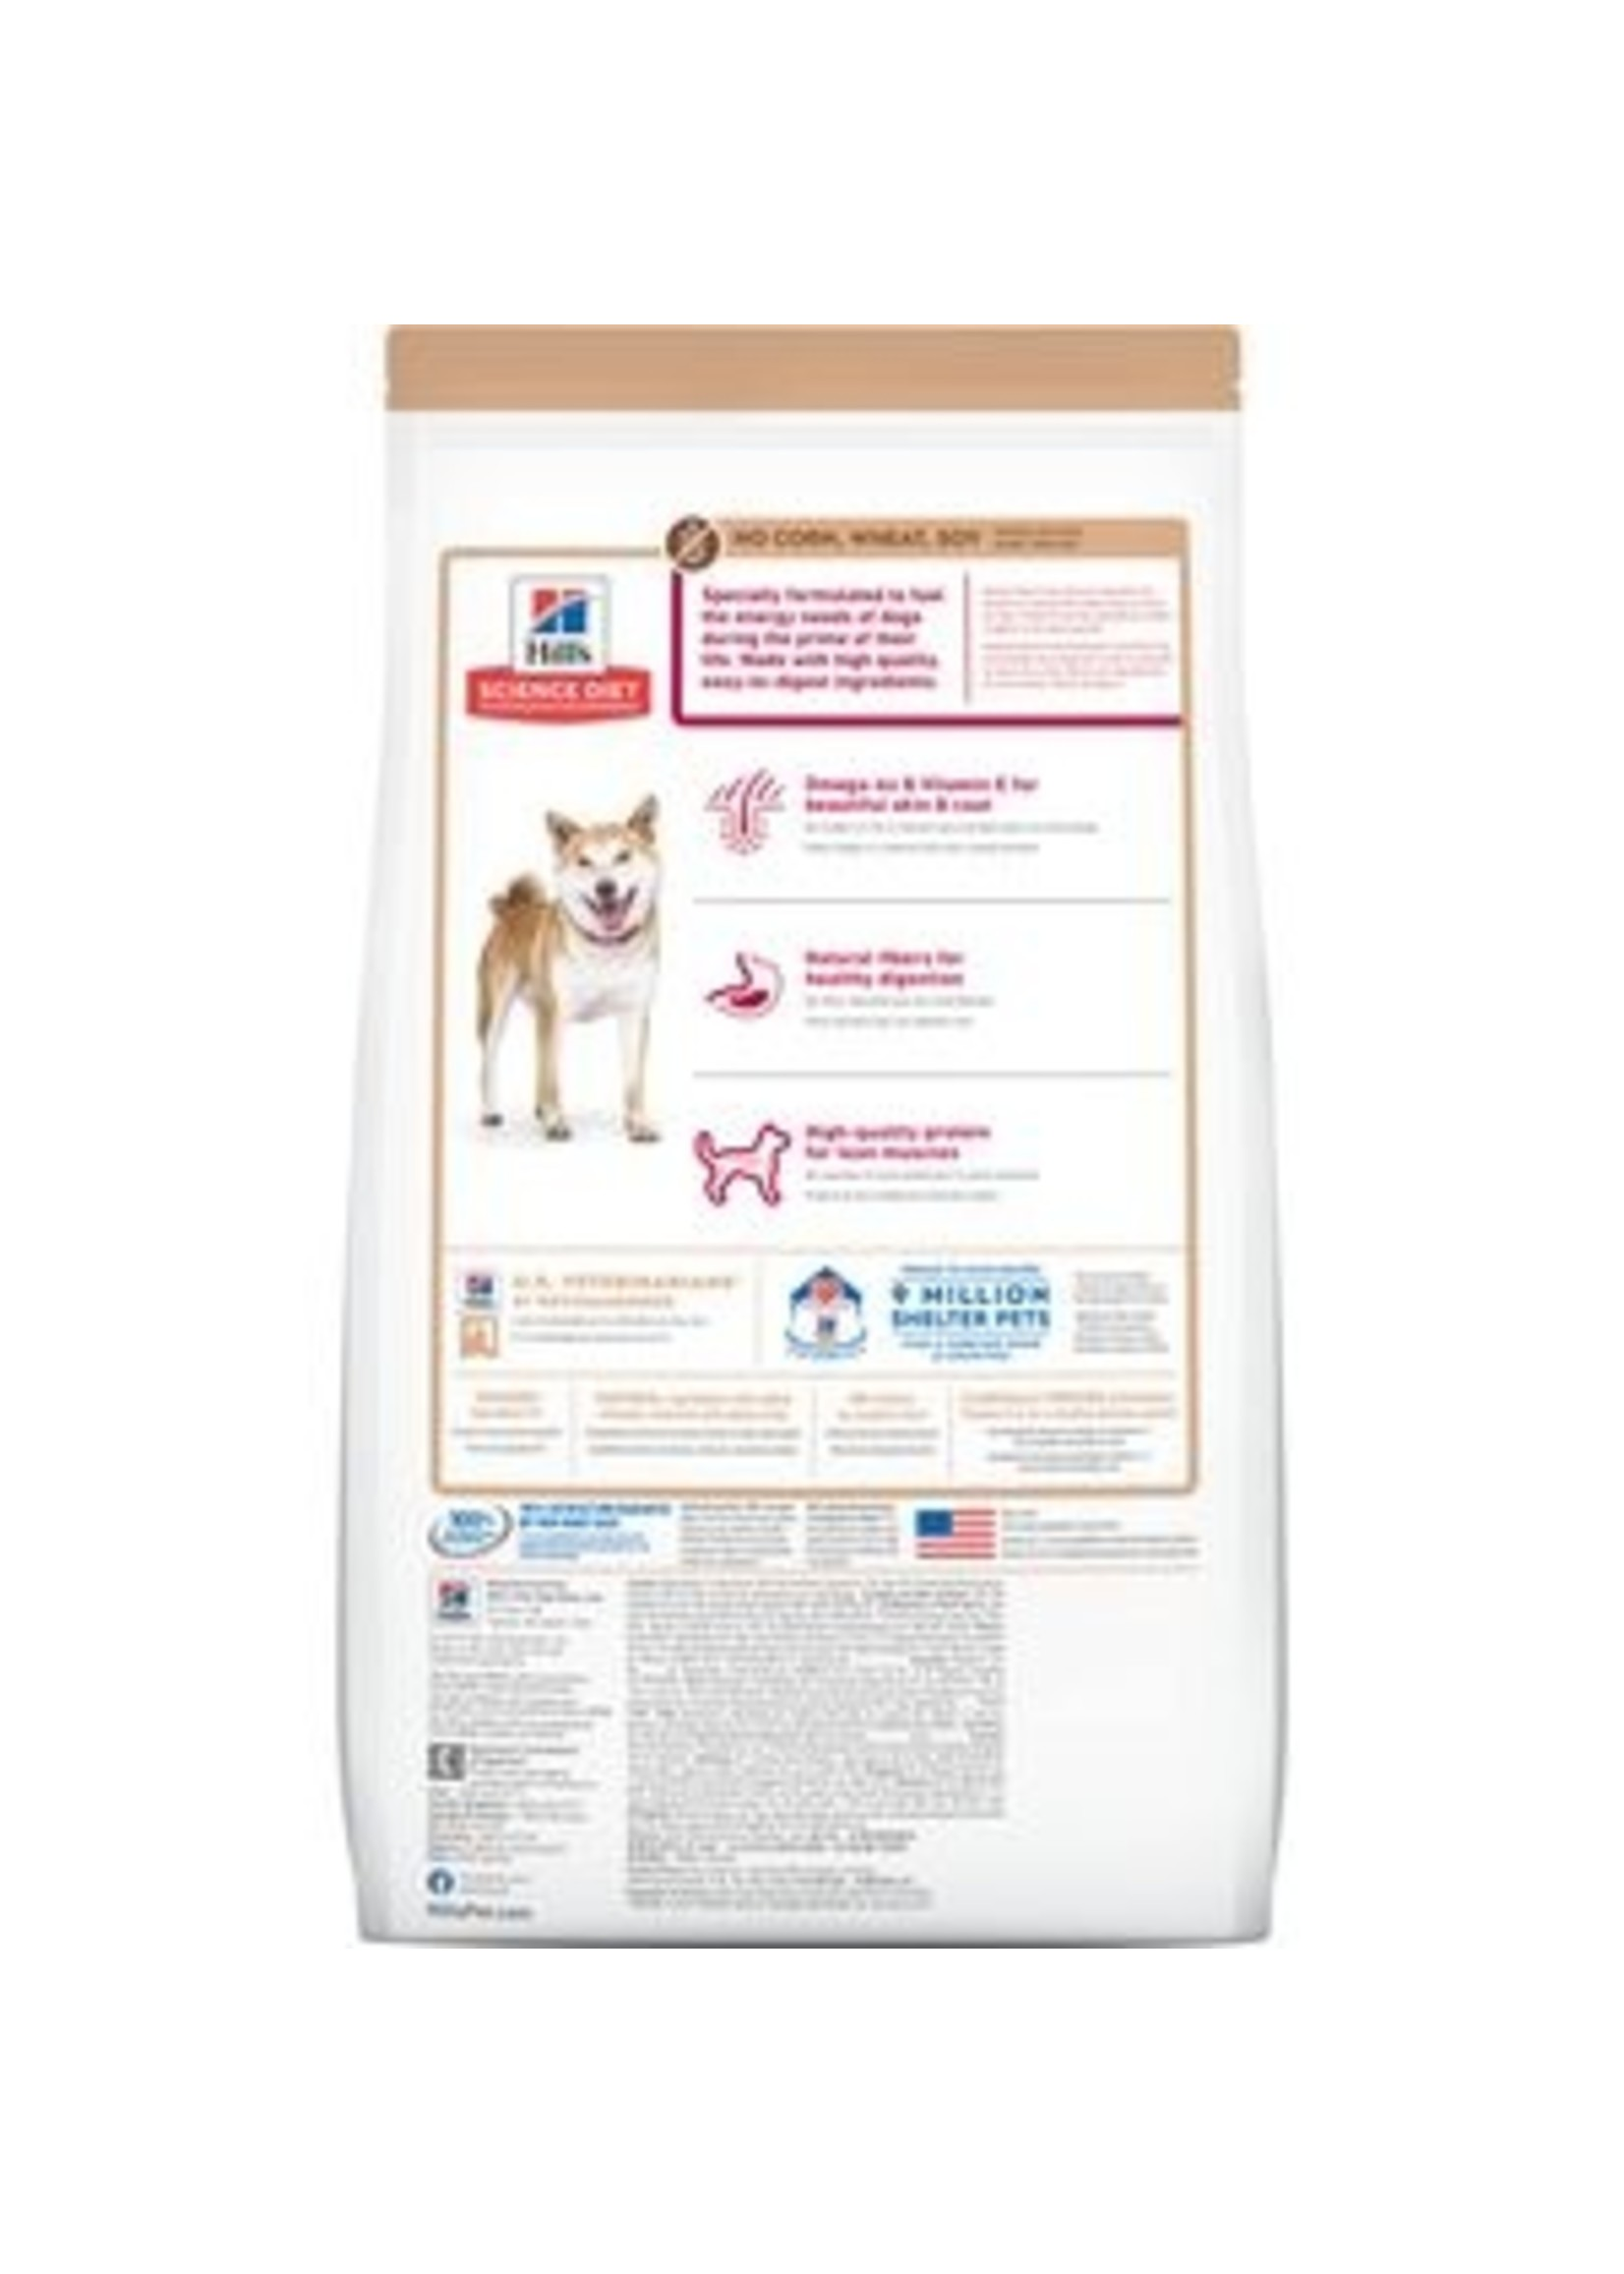 Hill's Science Diet Hill's Science Diet Adult No Corn, Wheat or Soy Dry Dog Food, Chicken, 30 lb Bag